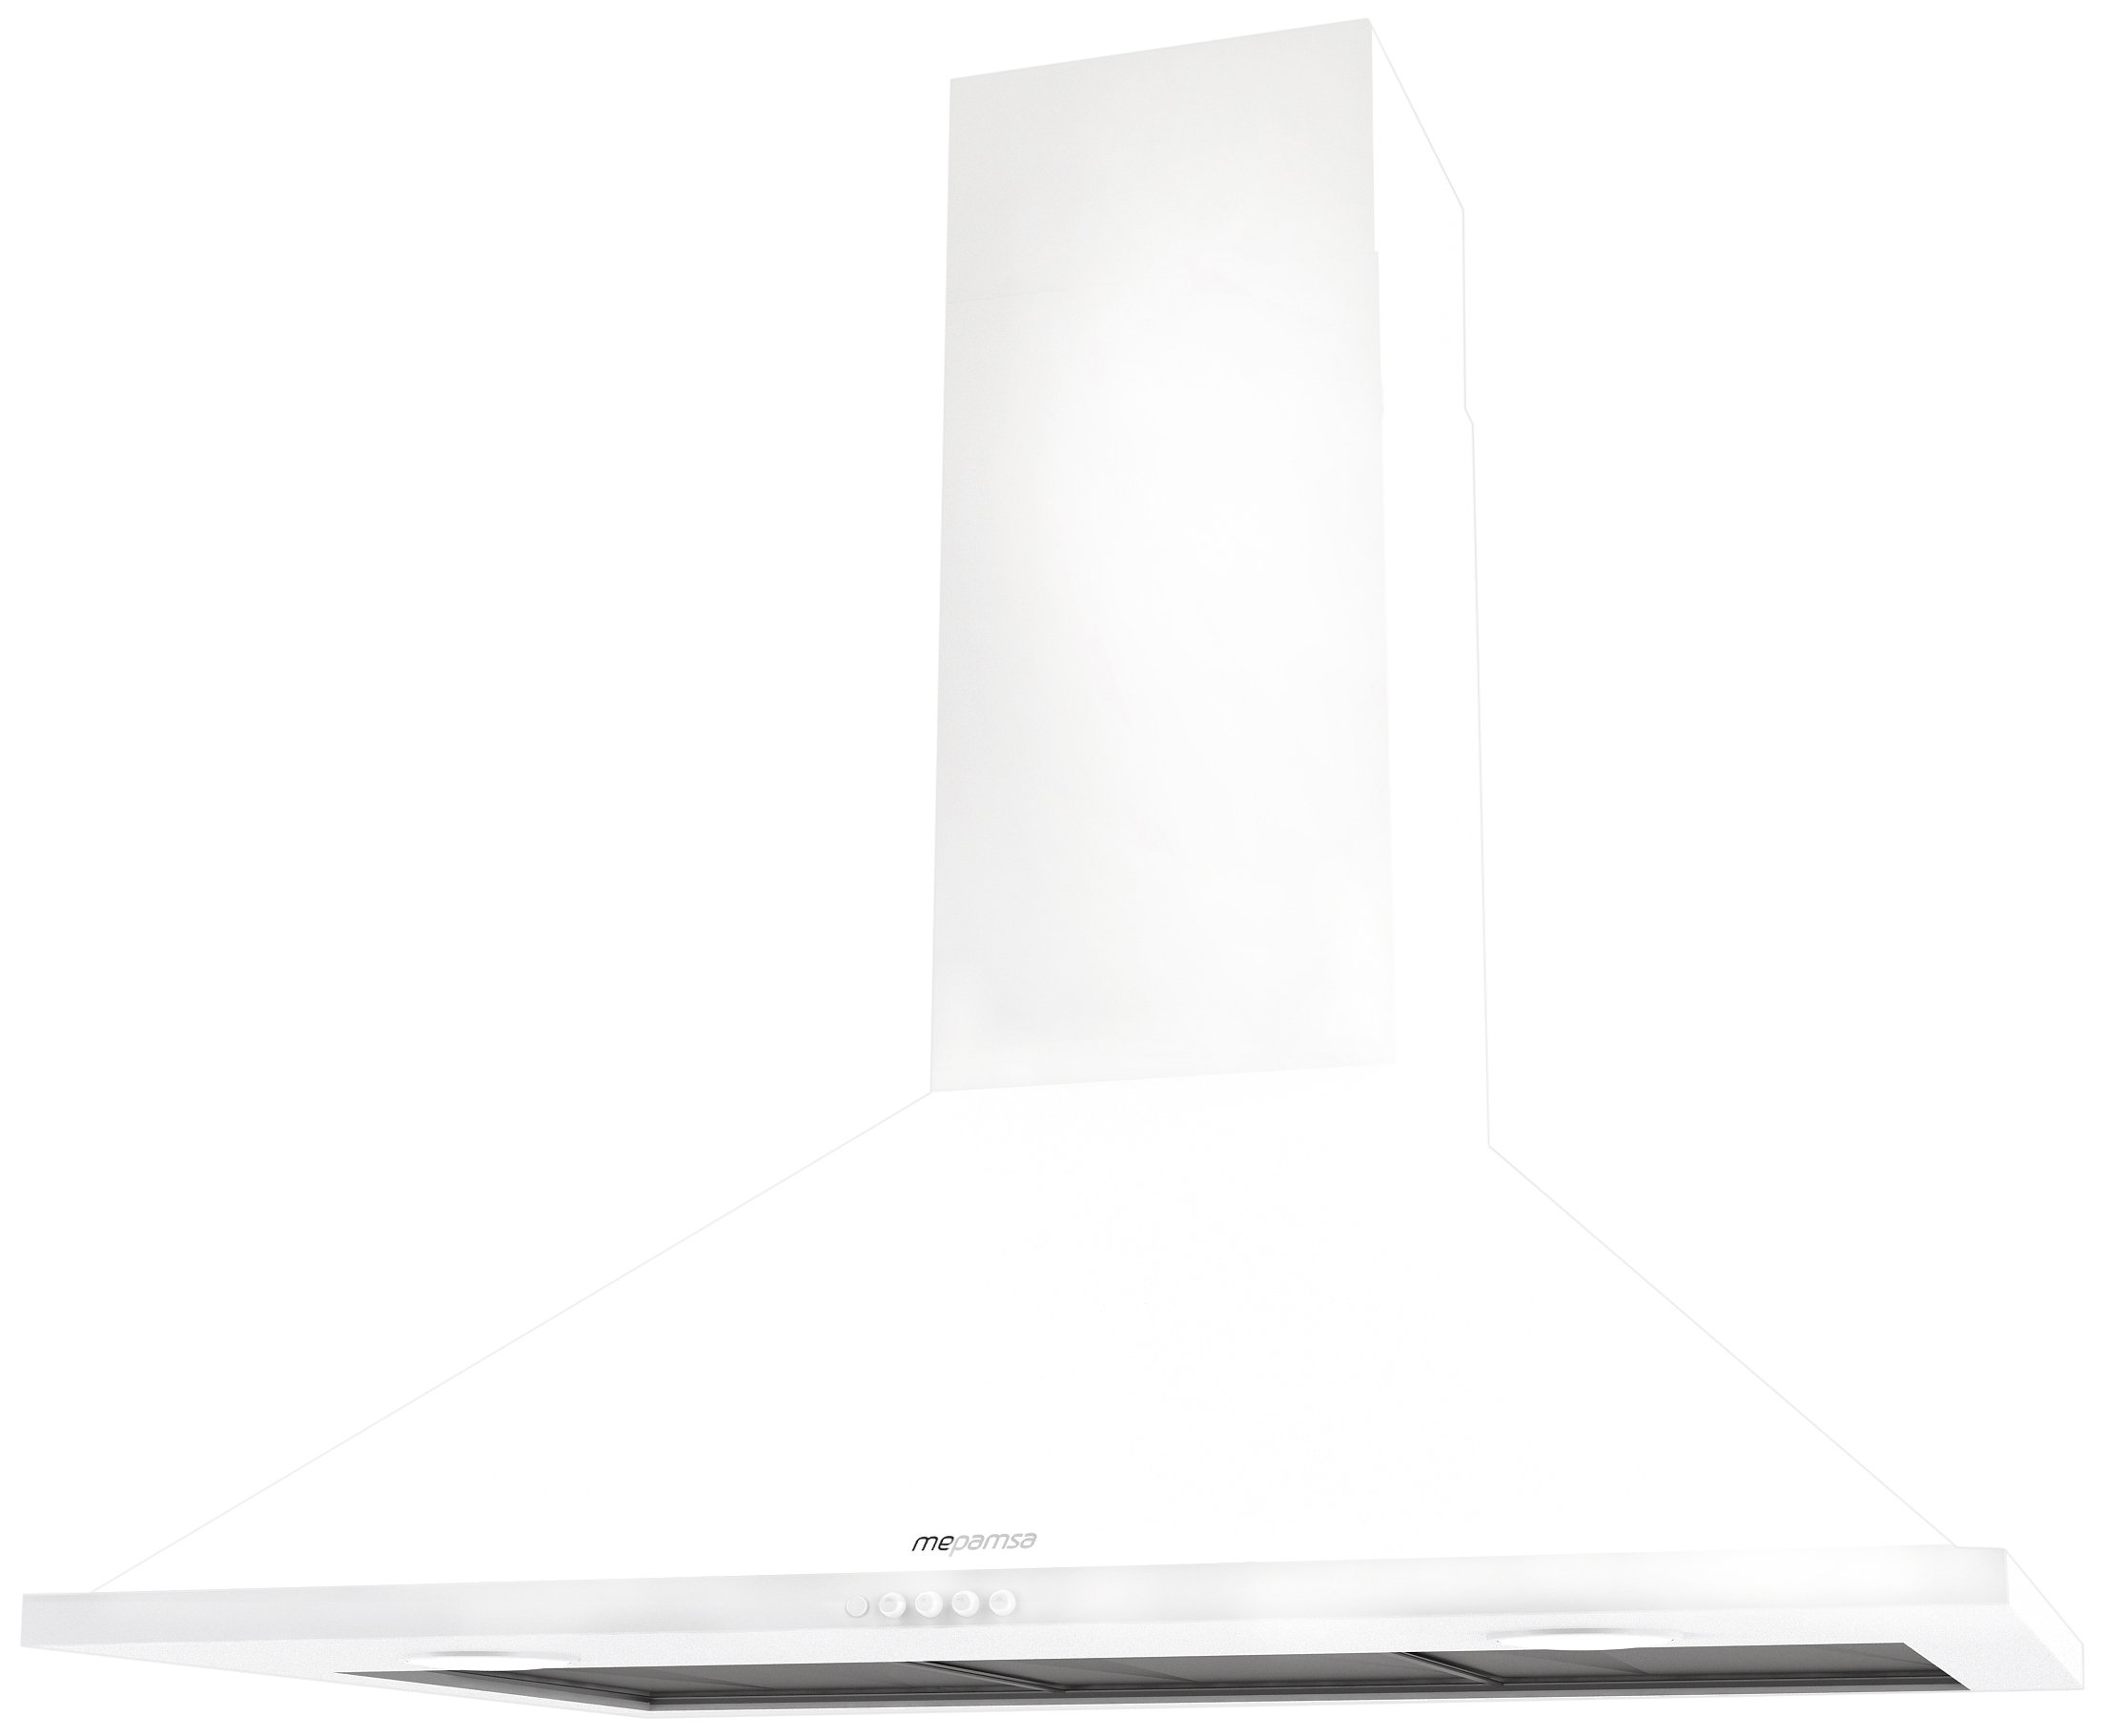 Mepamsa Syntesis H 60 V2 Campana aspirante decorativa de pared, color blanco, 28 W, 3 Velocidades: Amazon.es: Grandes electrodomésticos